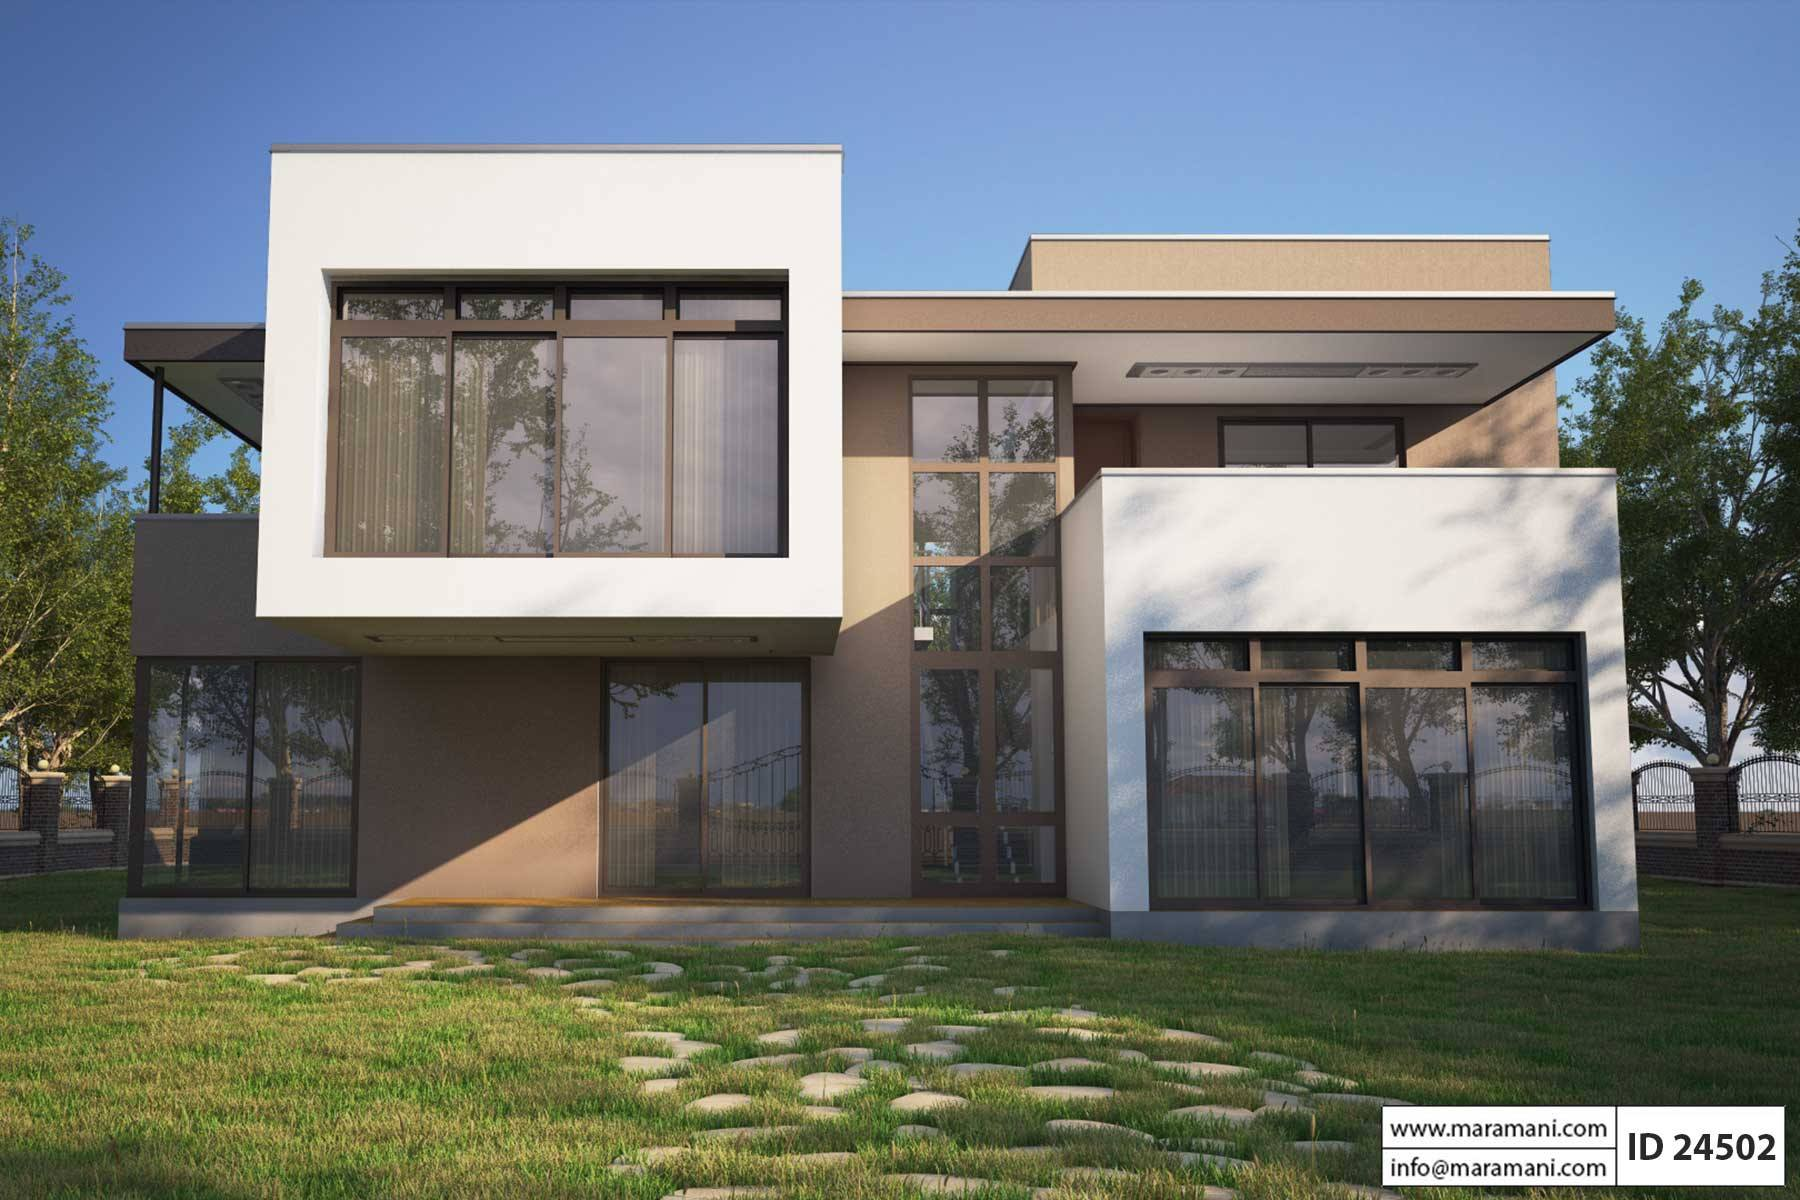 4 bedroom modern house plan id 24502 house plans maramani for 4 bedroom house design